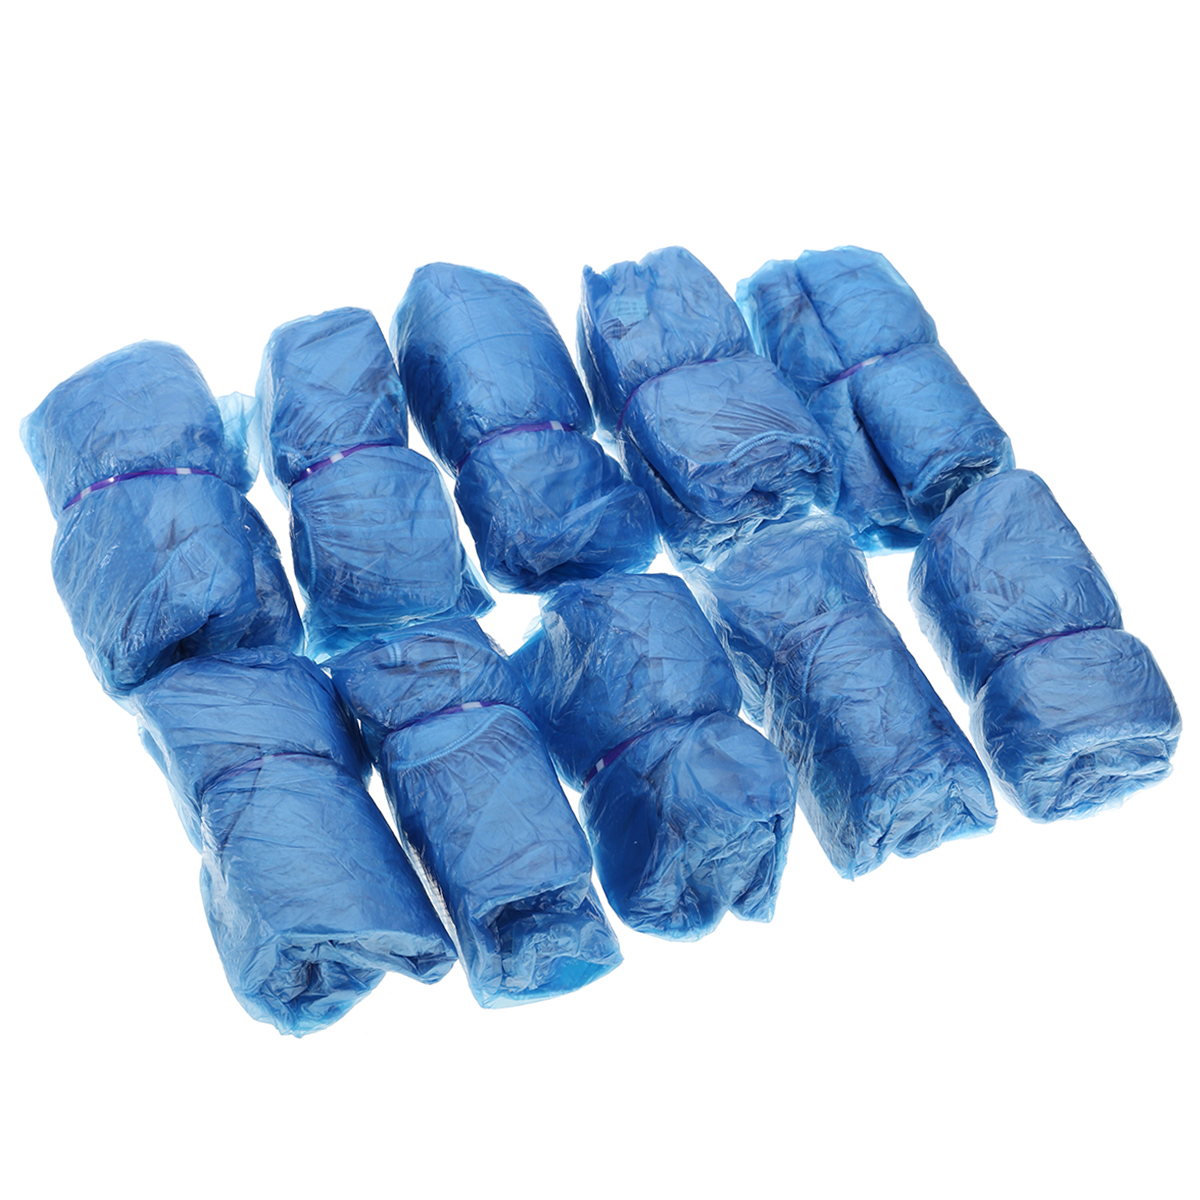 Blue Plastic Disposable Rain Cleaning Shoes Protective Cover Overshoes Resist Water Dirt And Mud Shoes Protective 100PCS